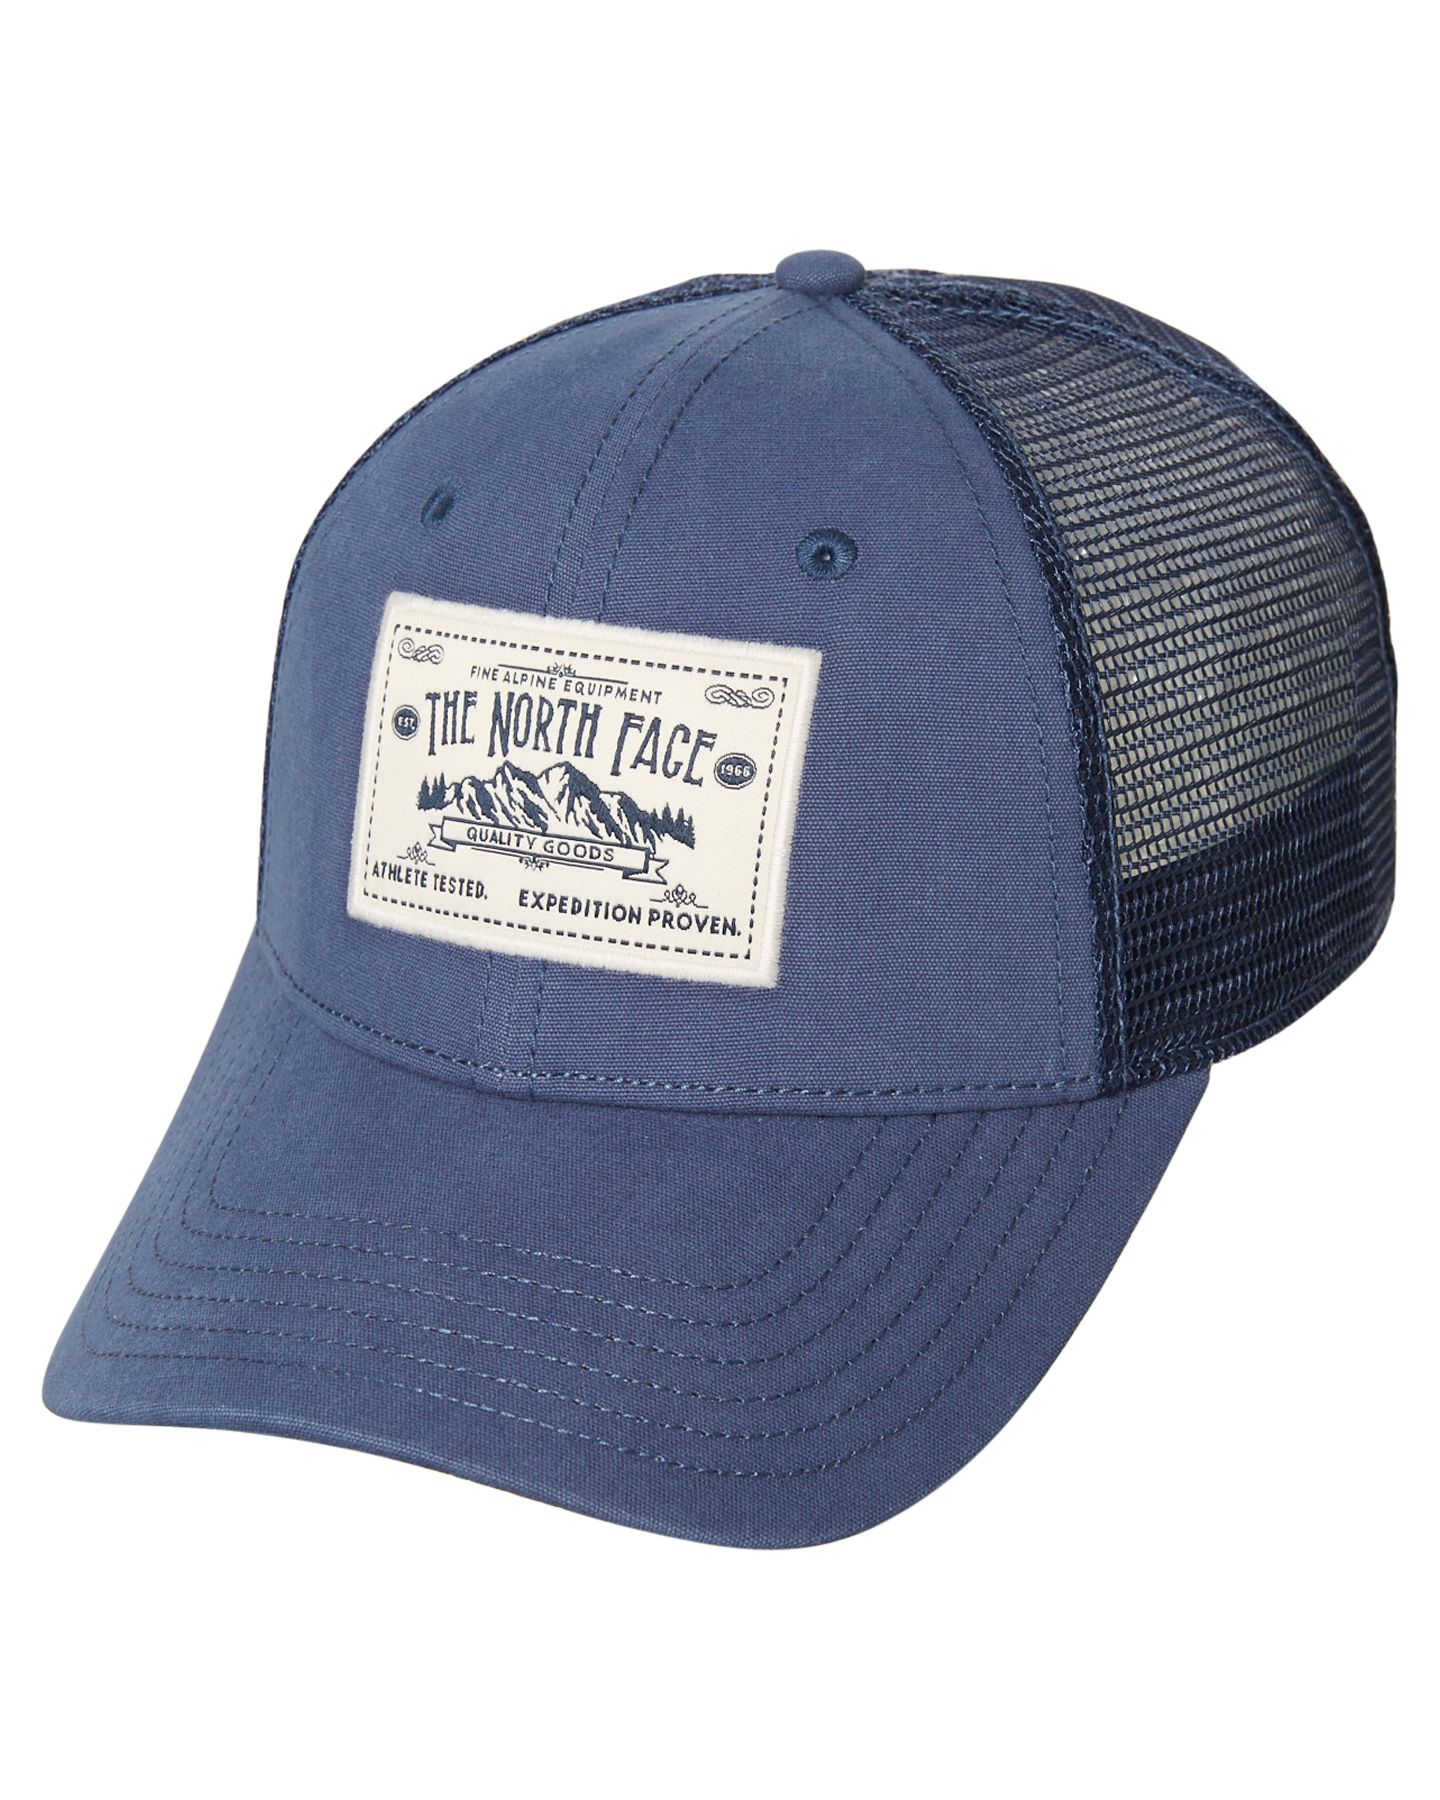 0dad7791aa0a8 Have a look at this The North Face Mudder Trucker Cap Blue - http